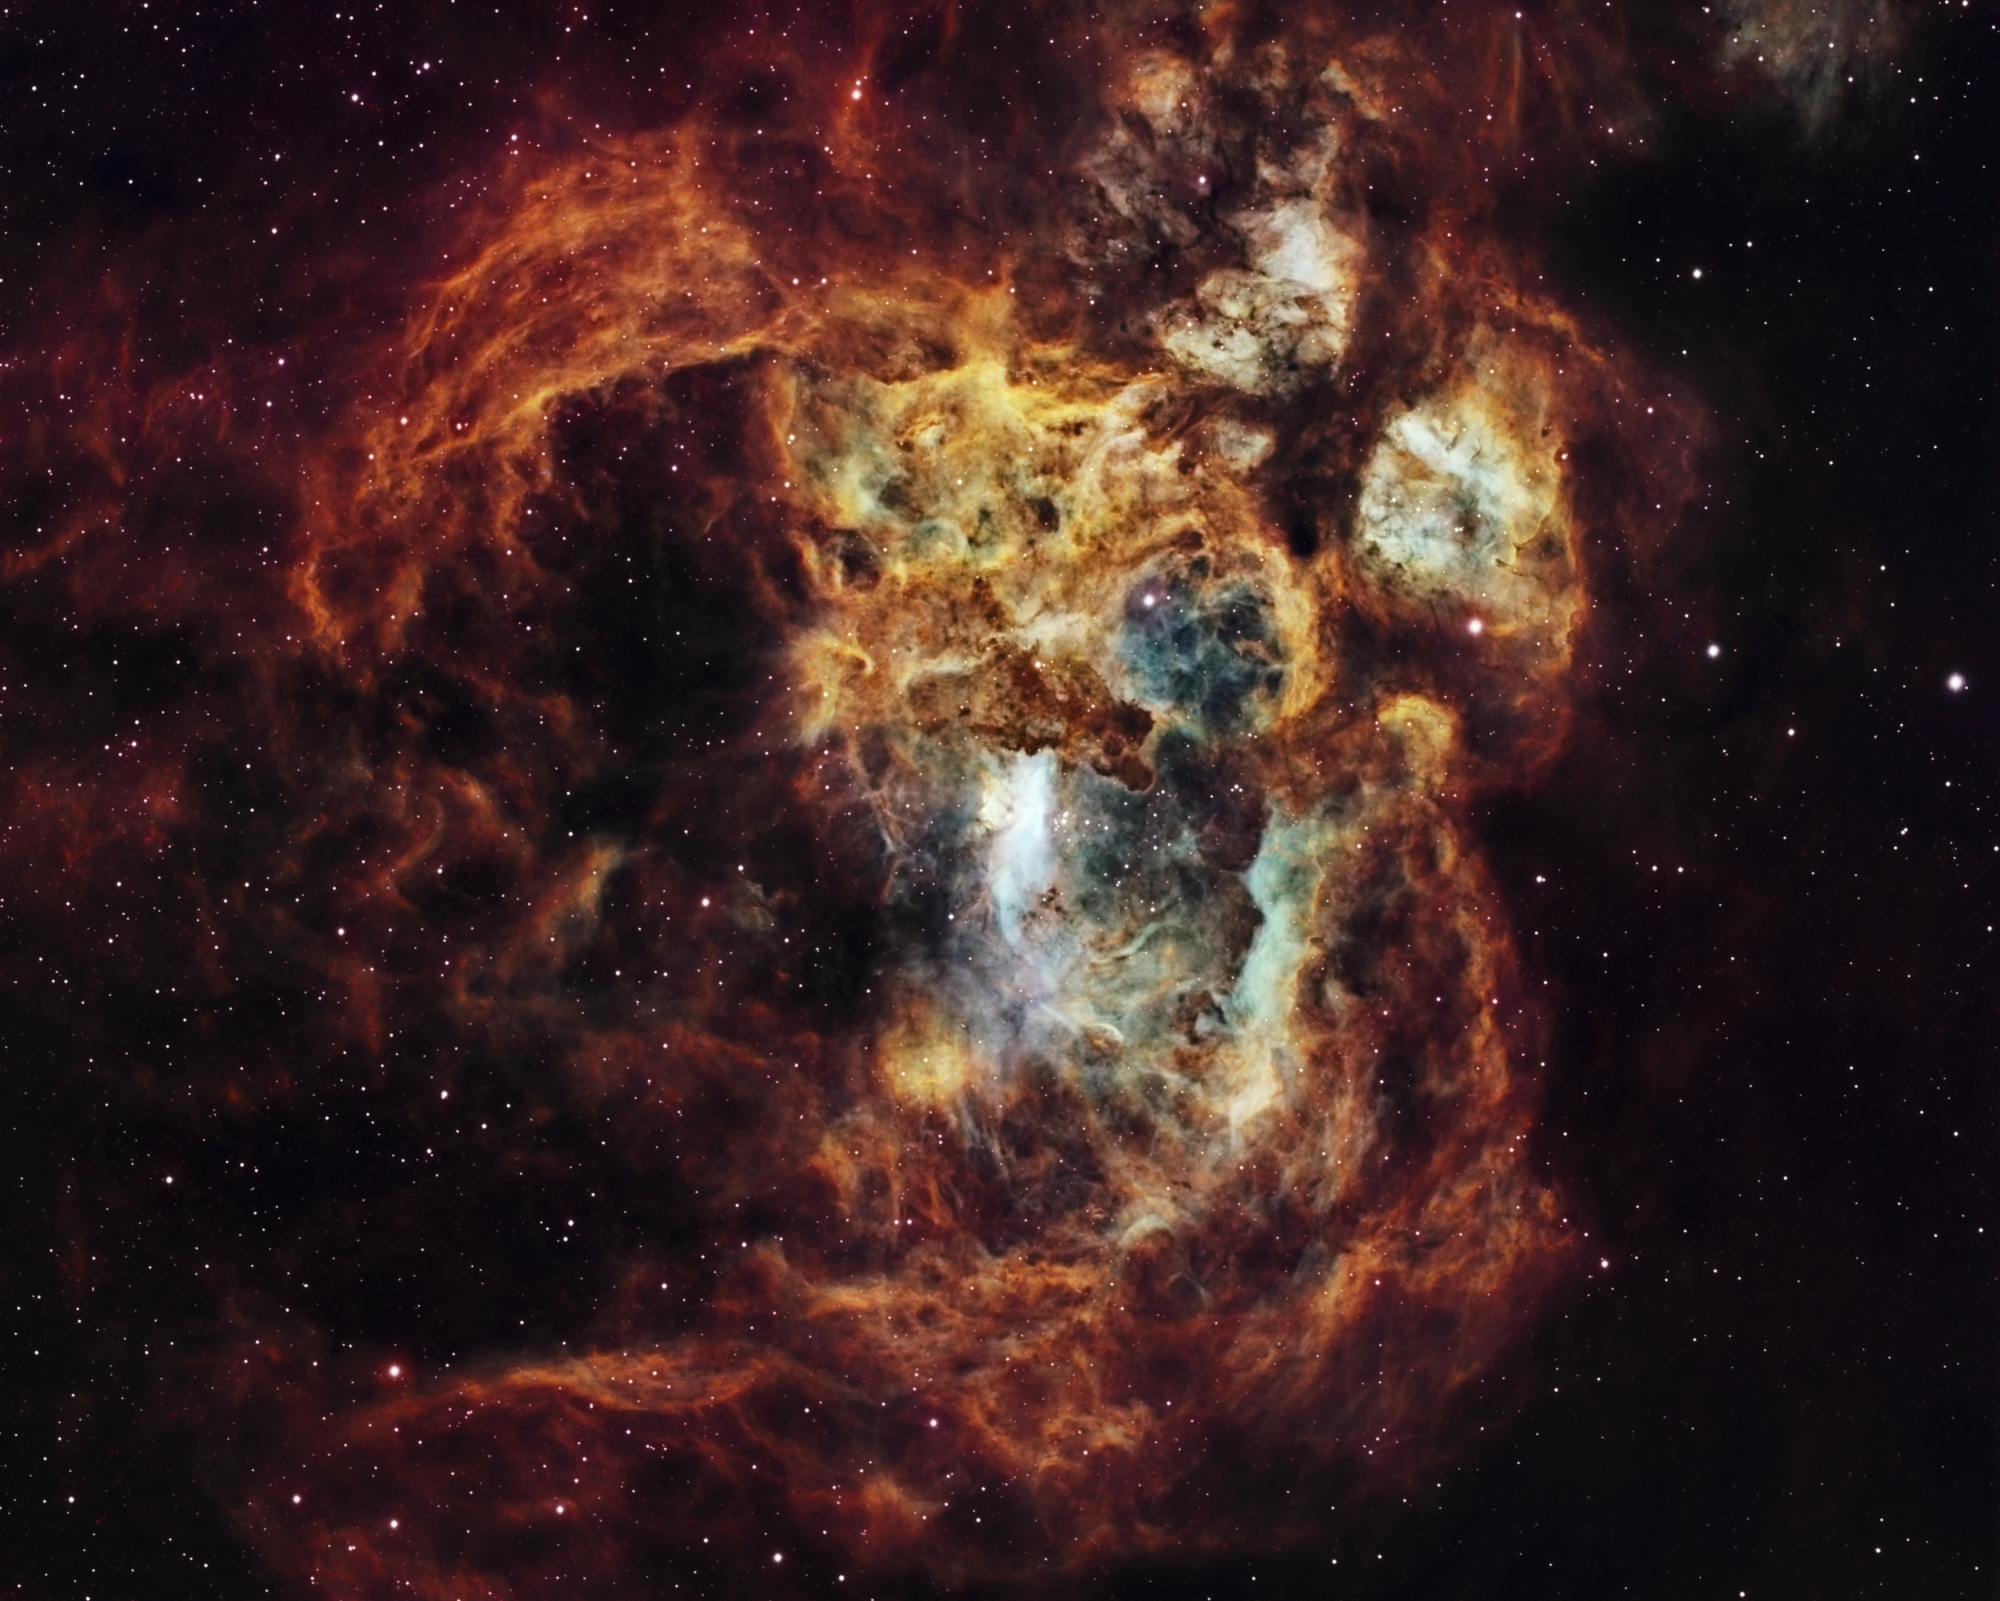   Insight Investment Astronomy Photographer of the Year 2019   Stars and Nebulae: Fiery Lobster Nebula by Suavi Lipinski